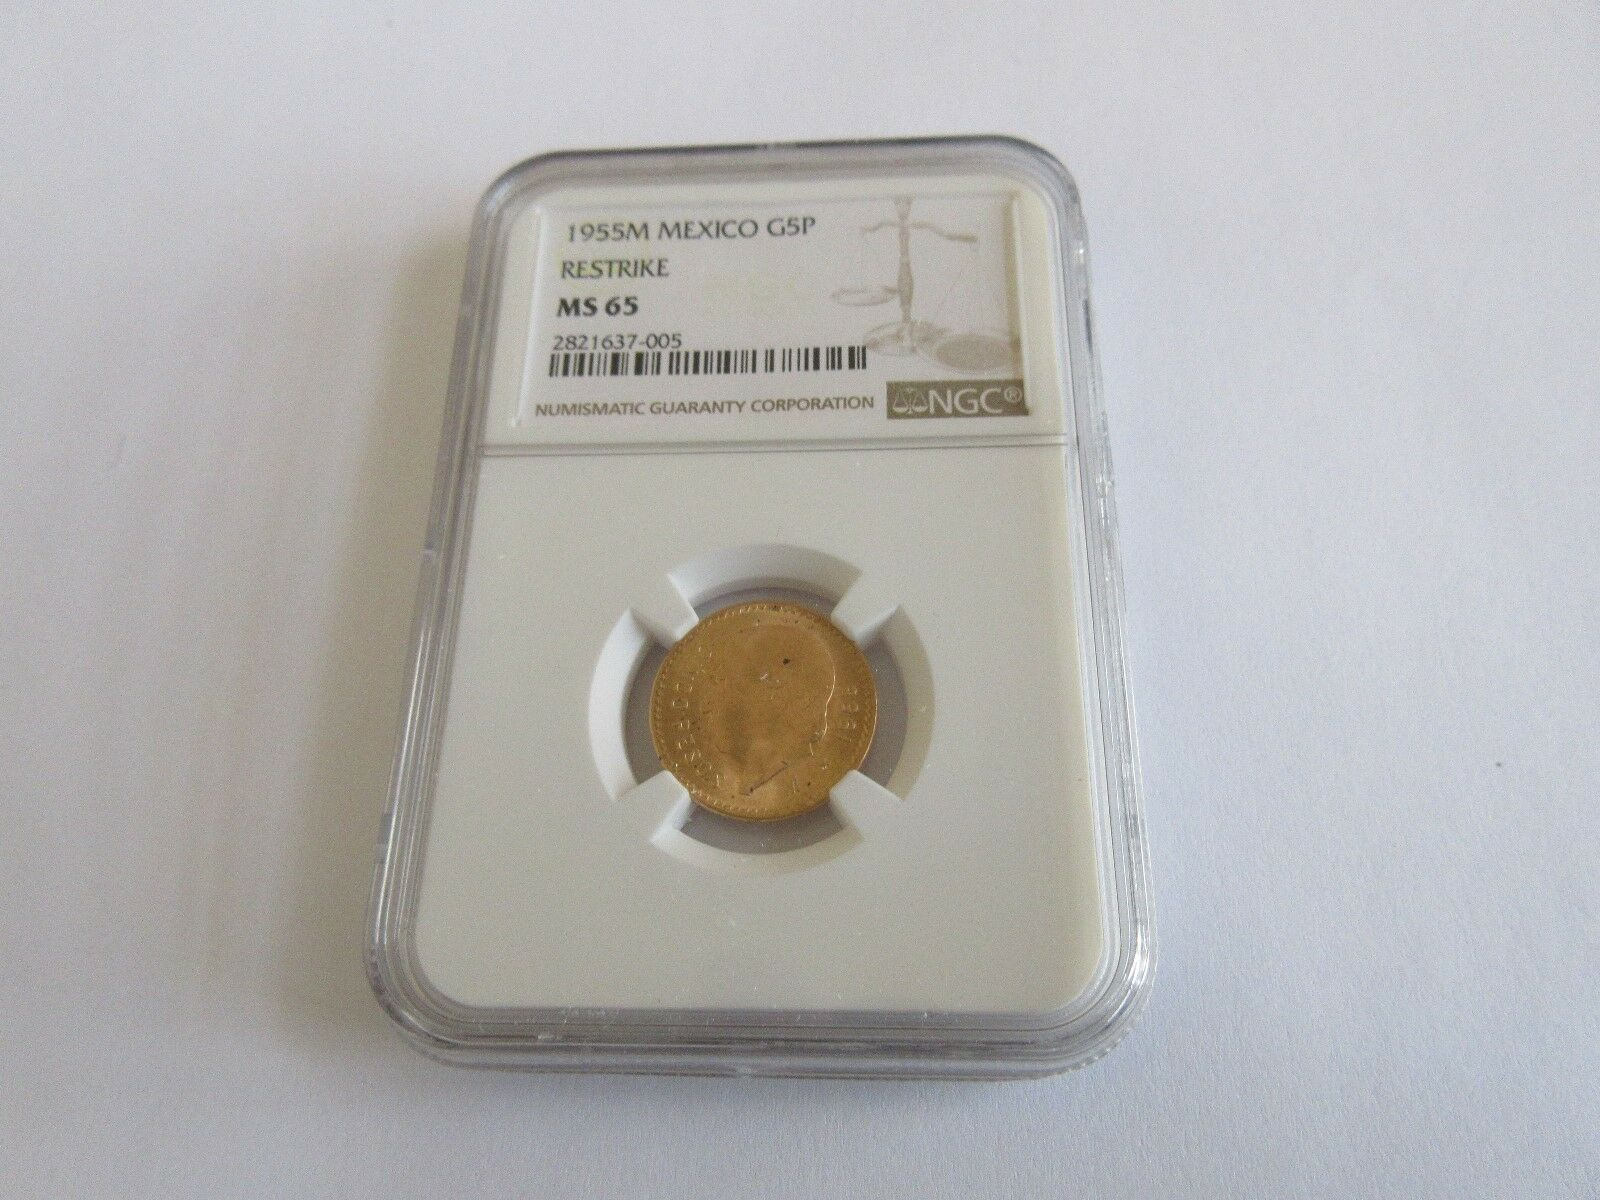 1955M , Mexico , G5P , Restrike , NGC Certified , MS 65